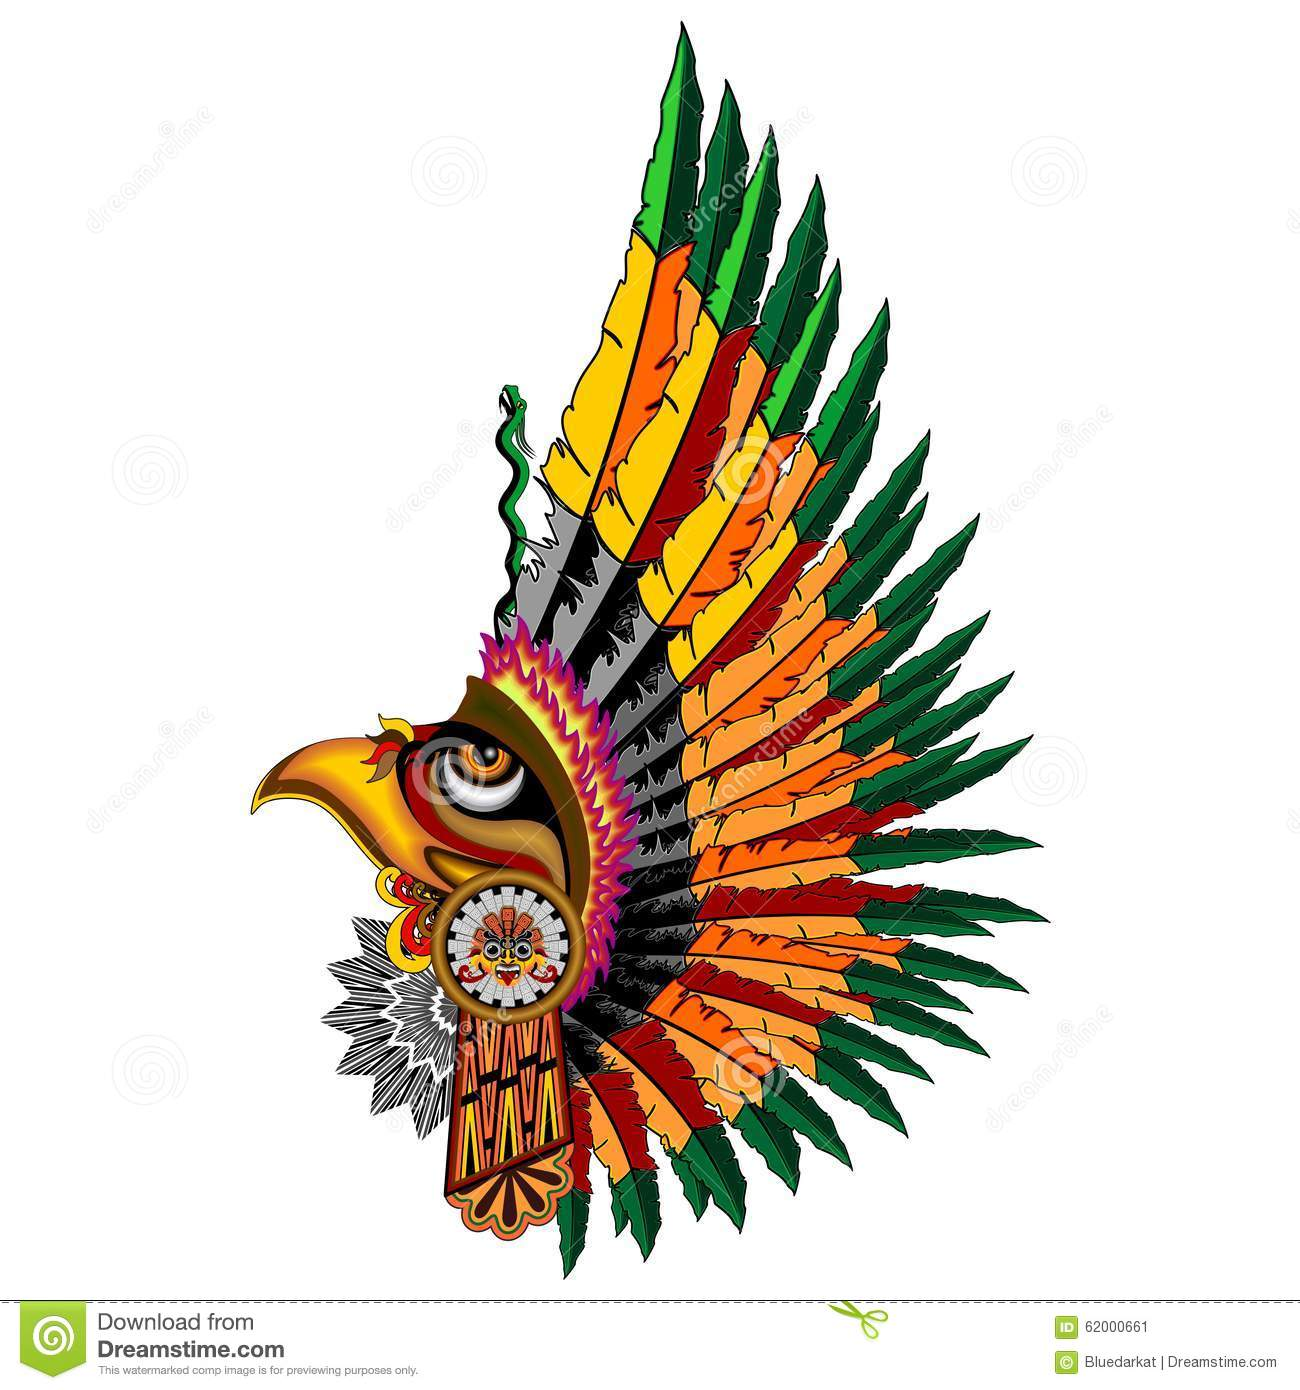 ... . Here's a Design of a Colorful, ornamental Aztec Eagle Warrior Mask